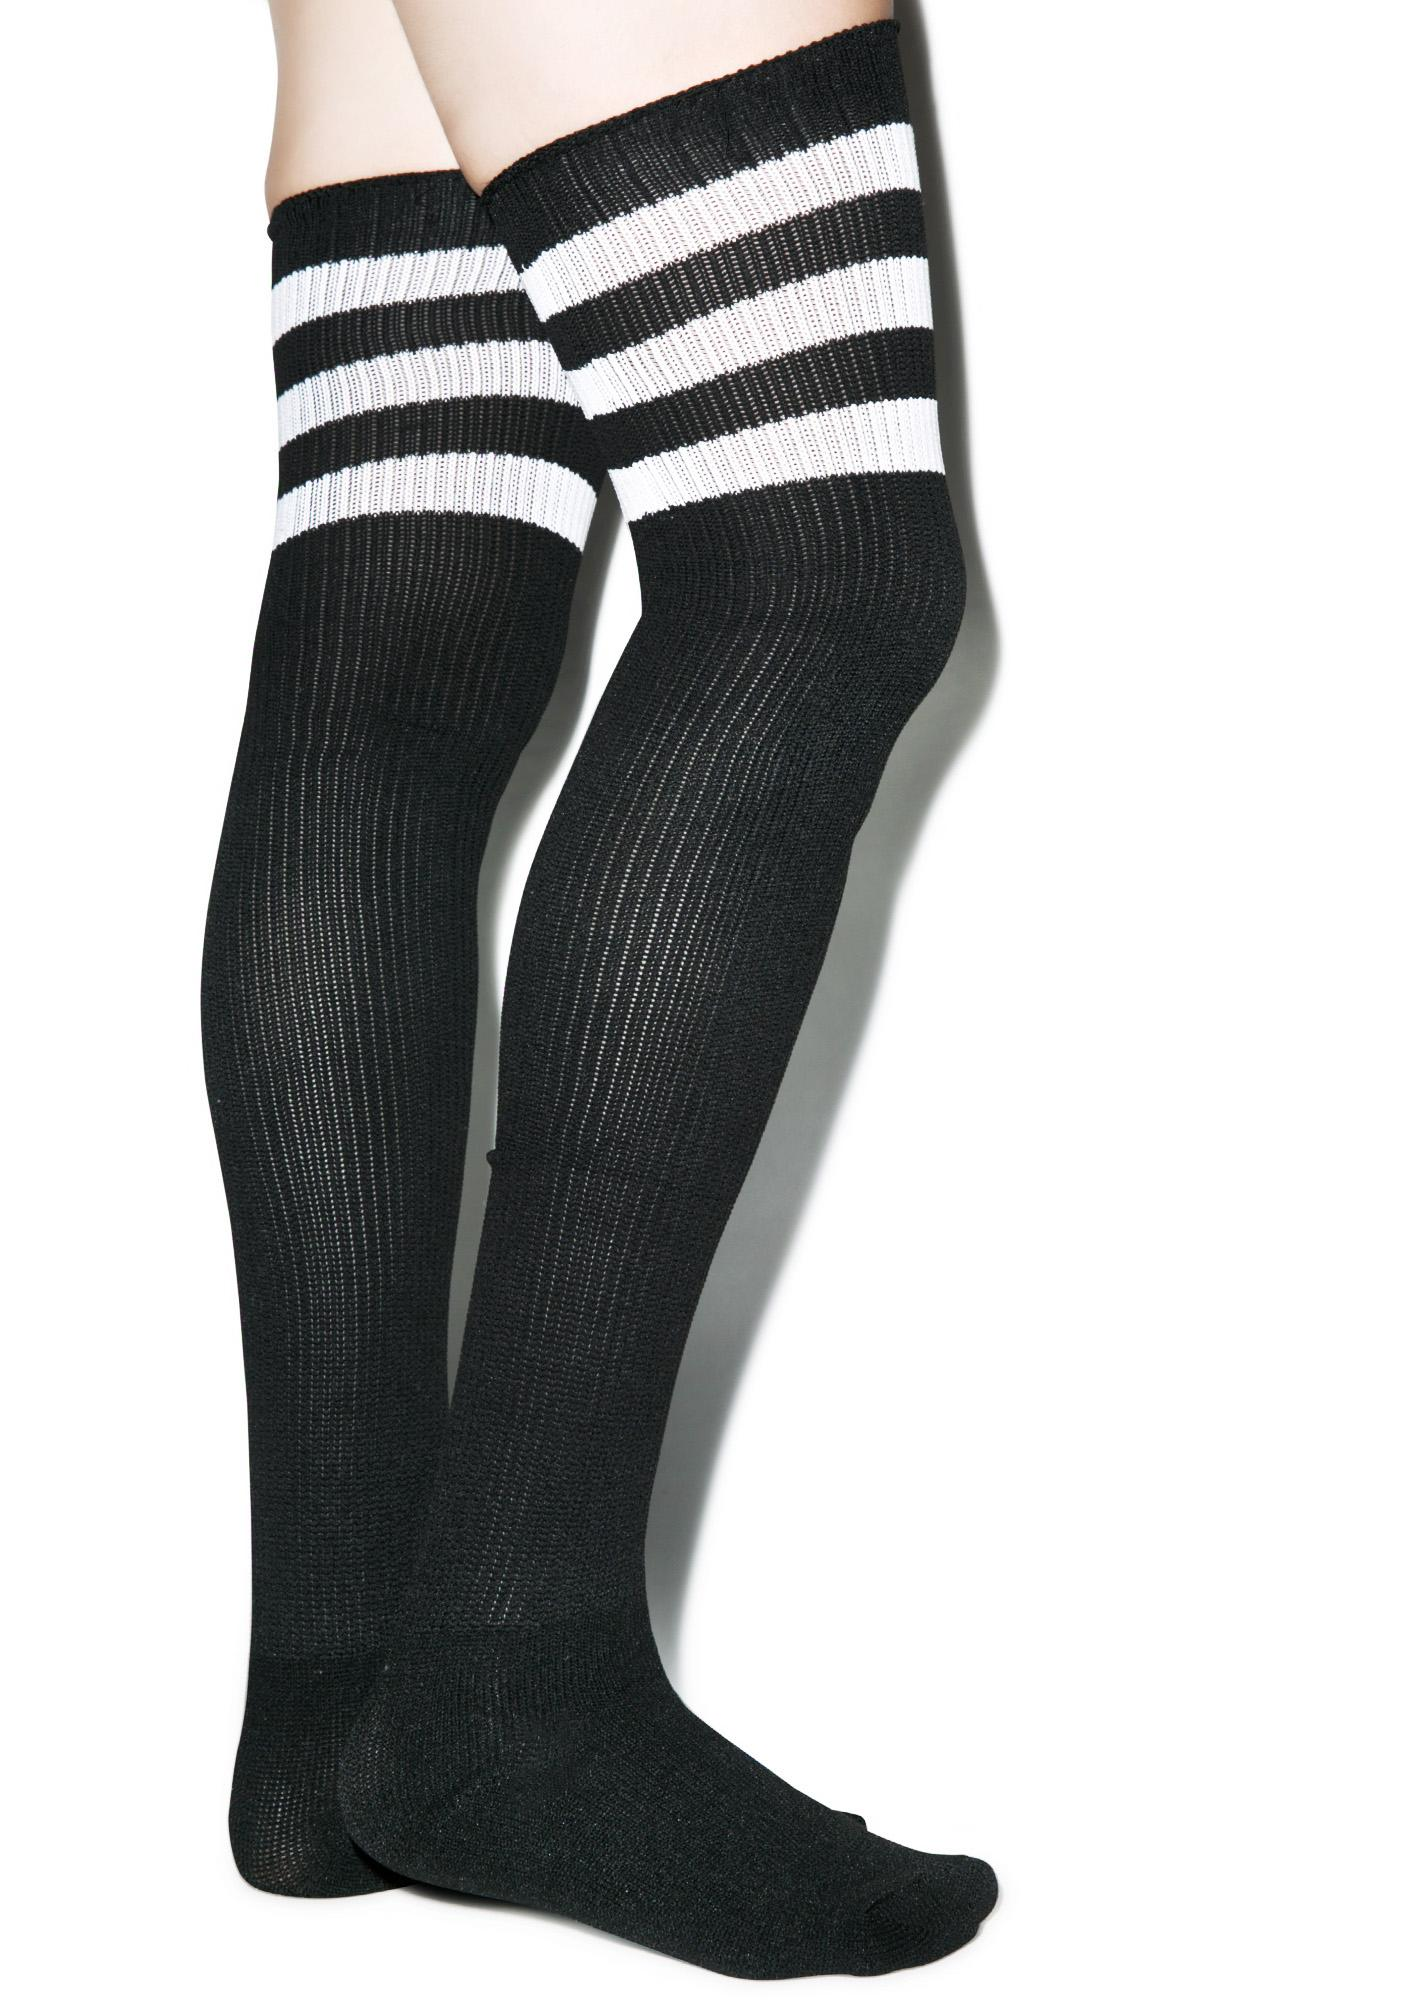 Rack 'Em Up Athletic Thigh Highs